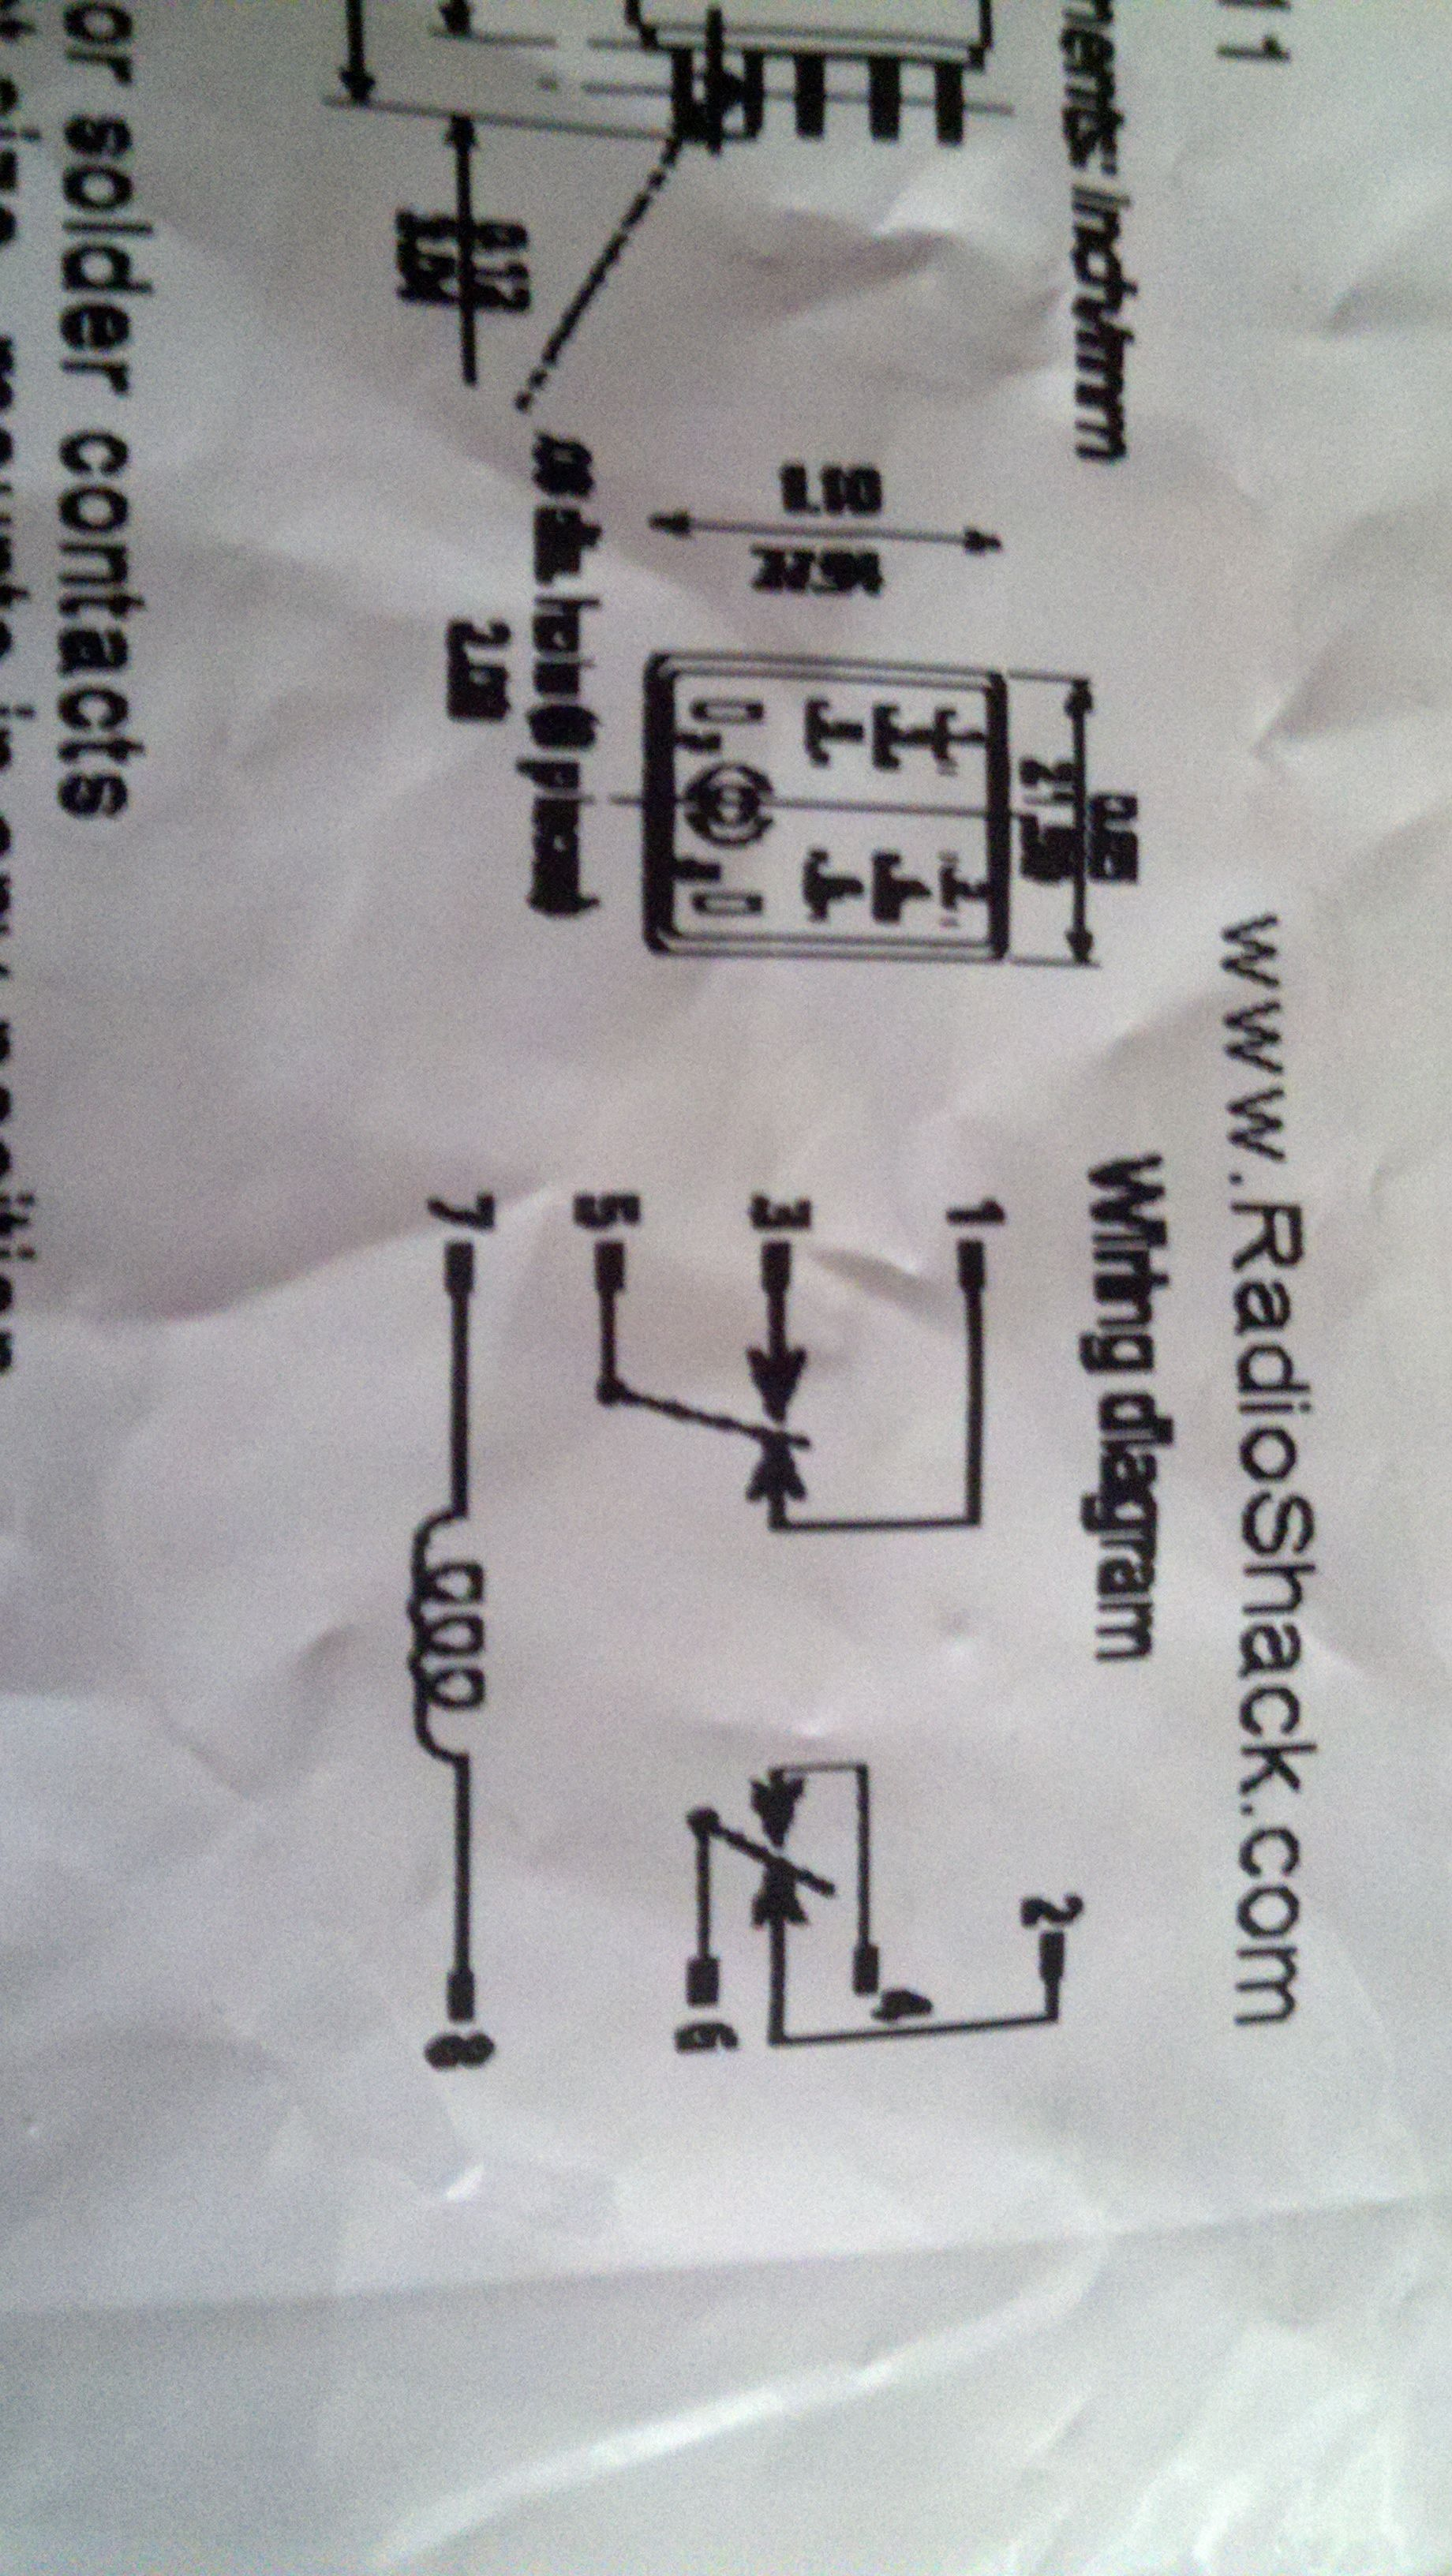 Relay Wiring Diagram For Drl